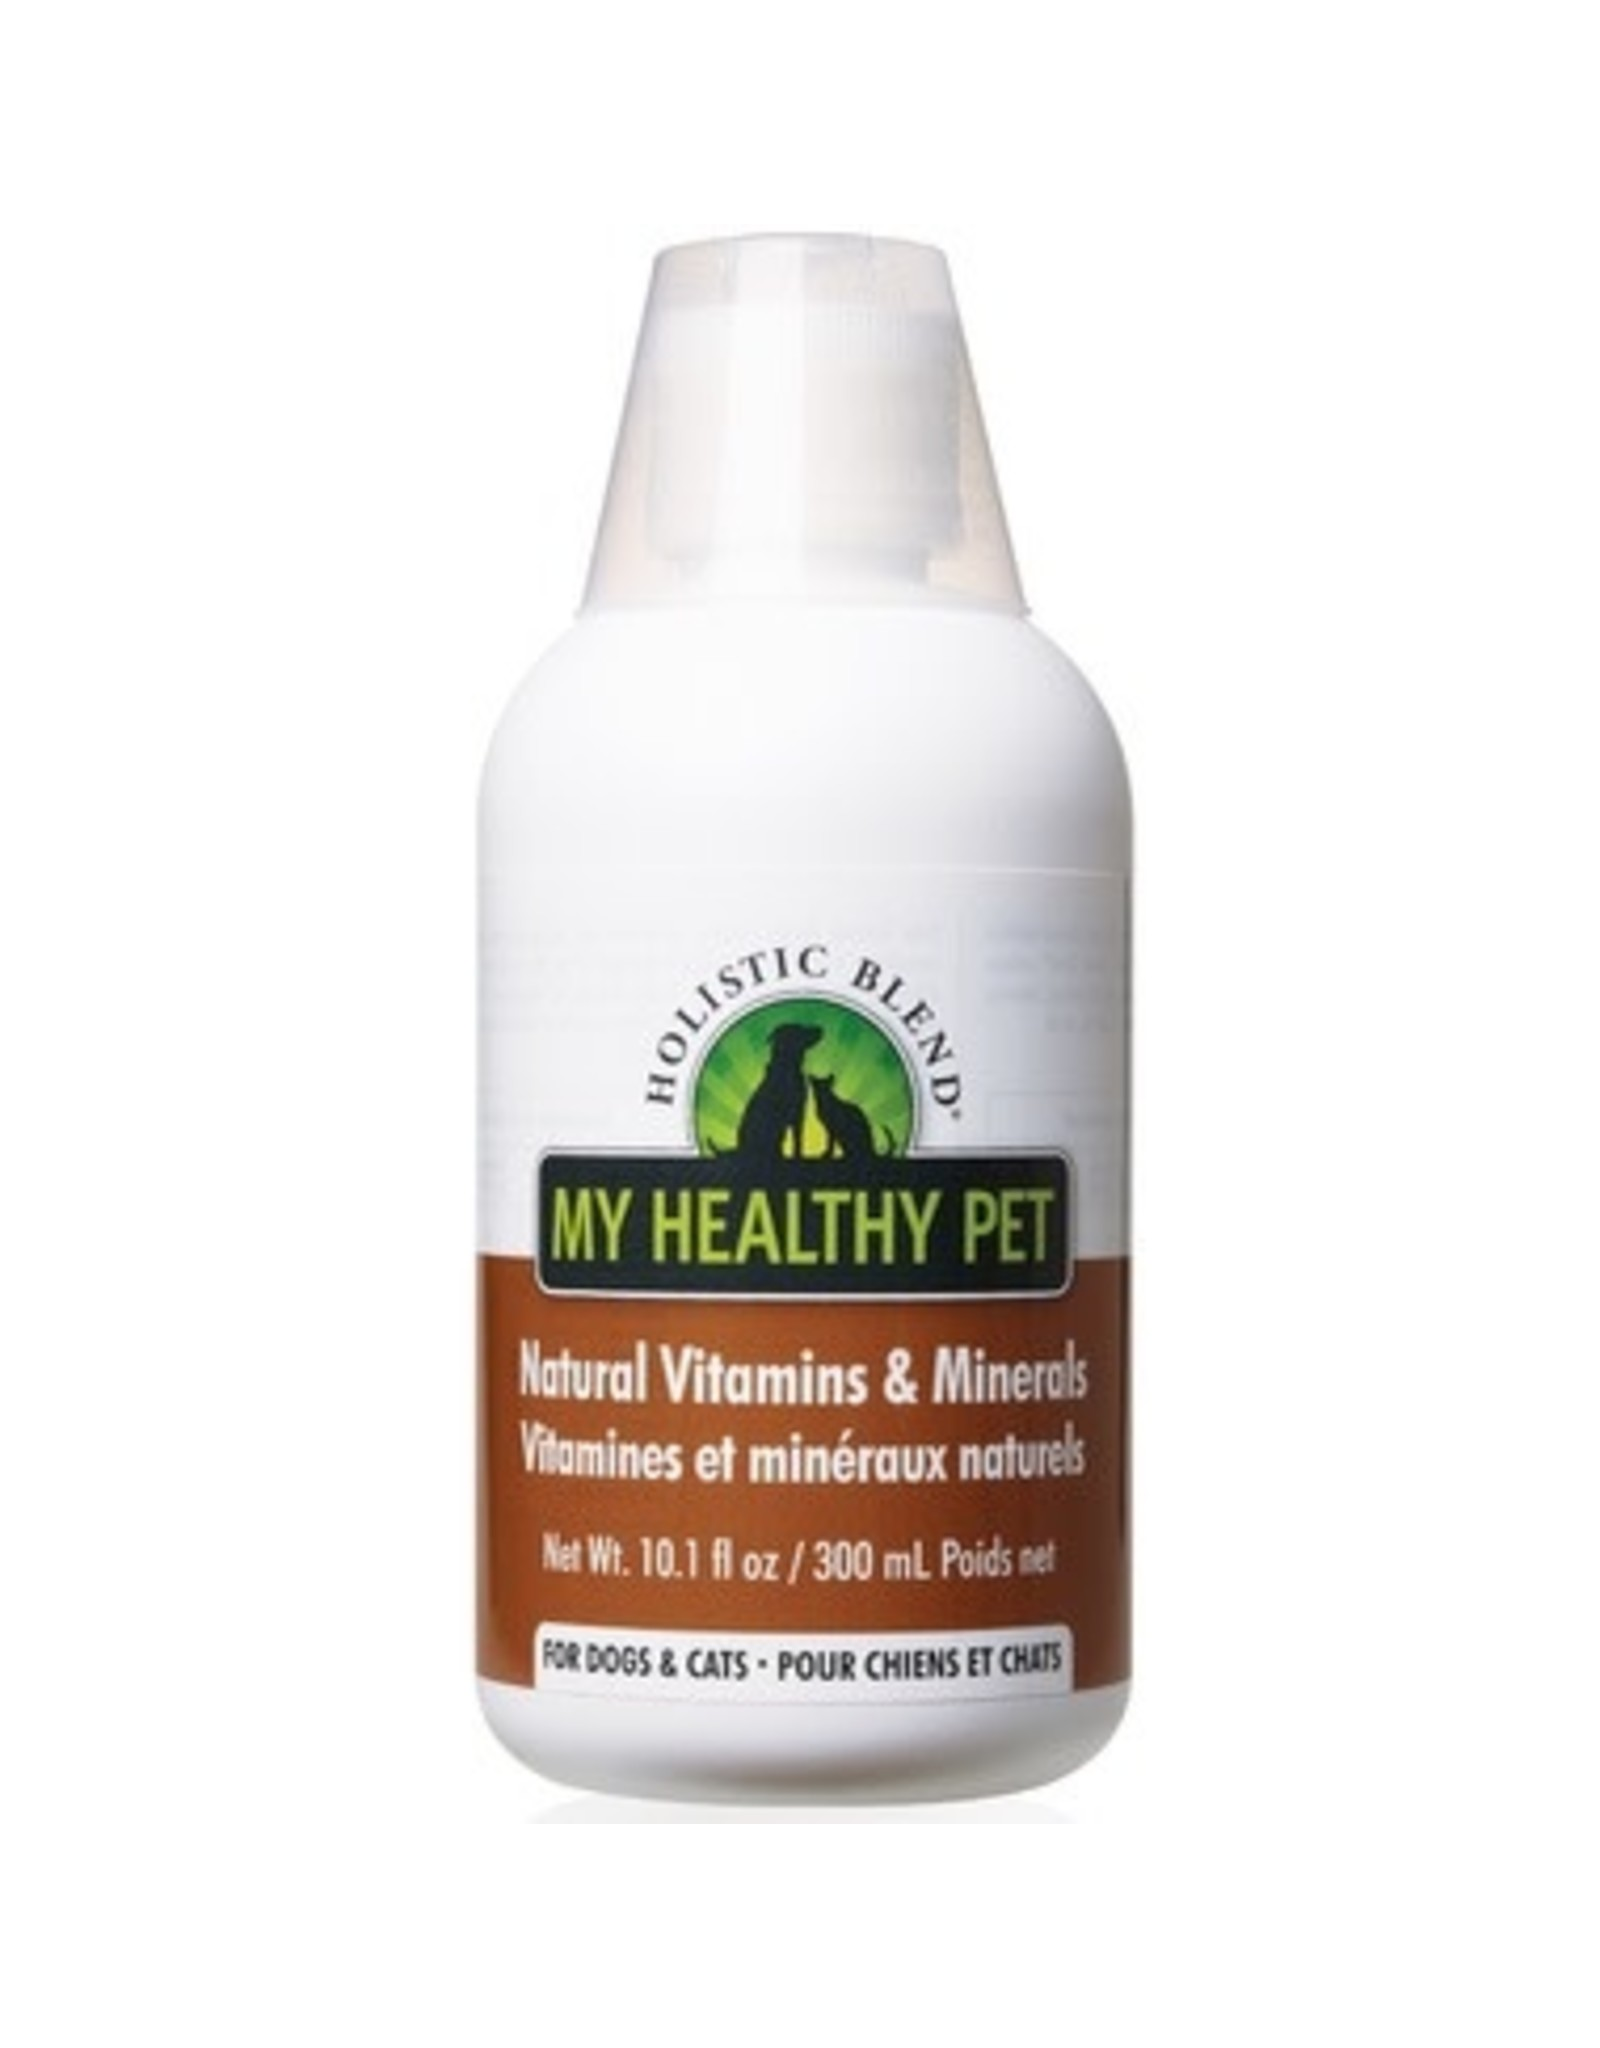 HOLISTIC BLEND My Healthy Pet - Natural Vitamins & Minerals 10.1oz